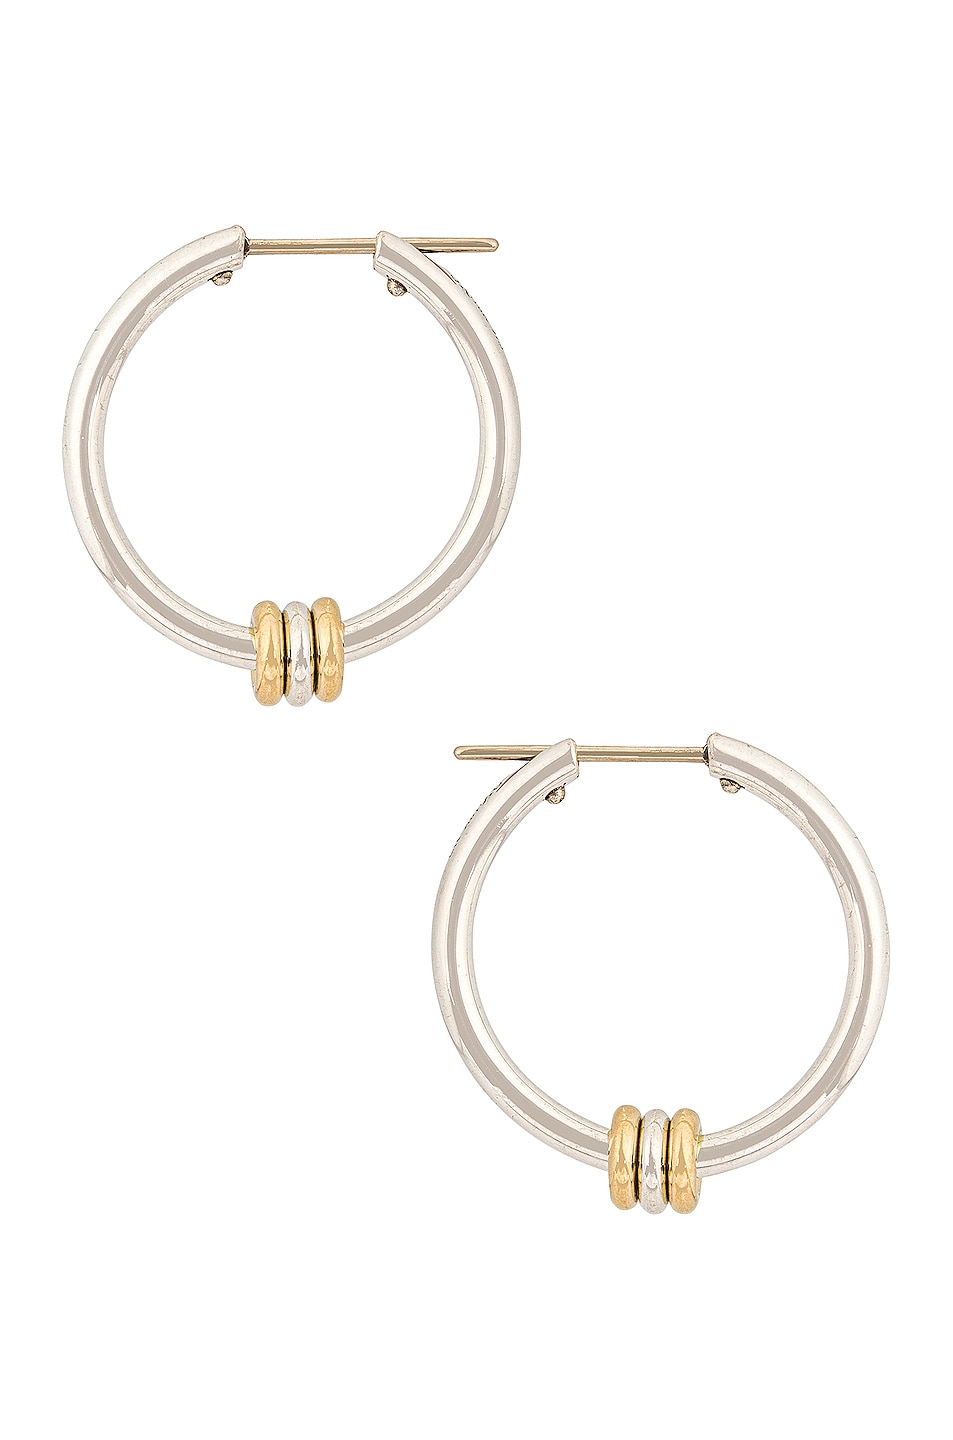 Image 1 of Spinelli Kilcollin Argo SG Earrings in Sterling Silver & 18K Yellow Gold